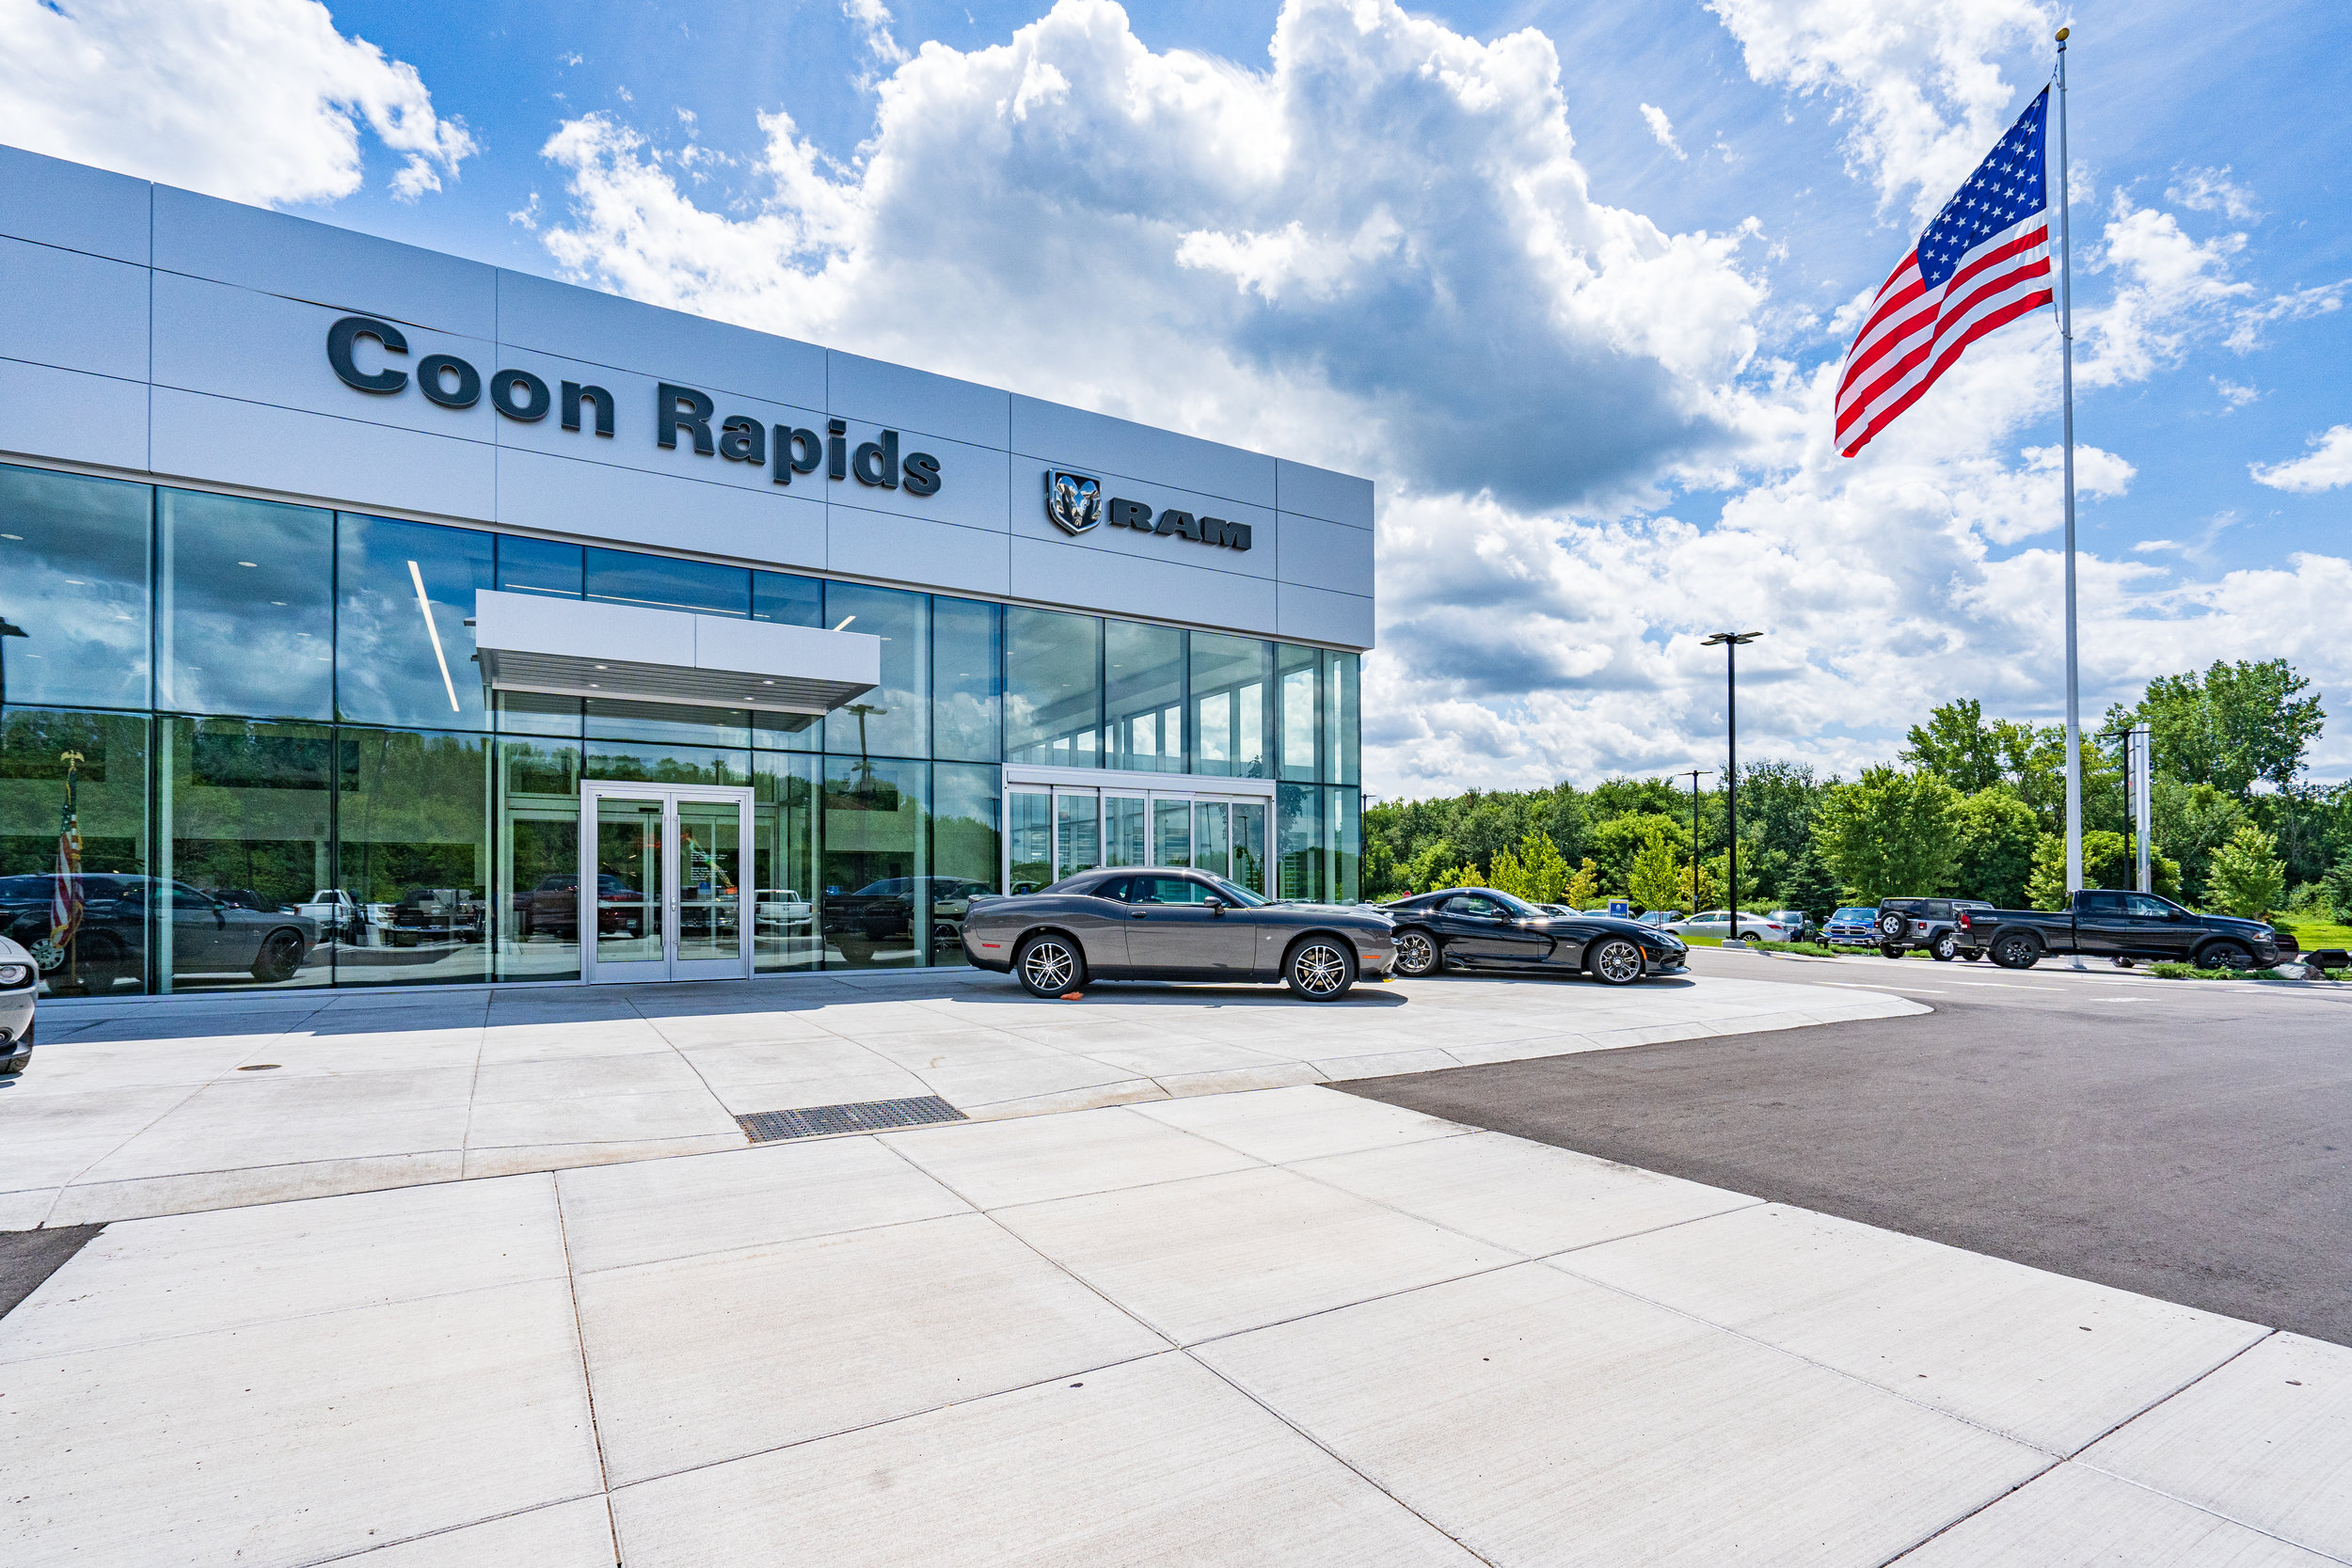 Coon Rapids Car Dealership Print-6.jpg